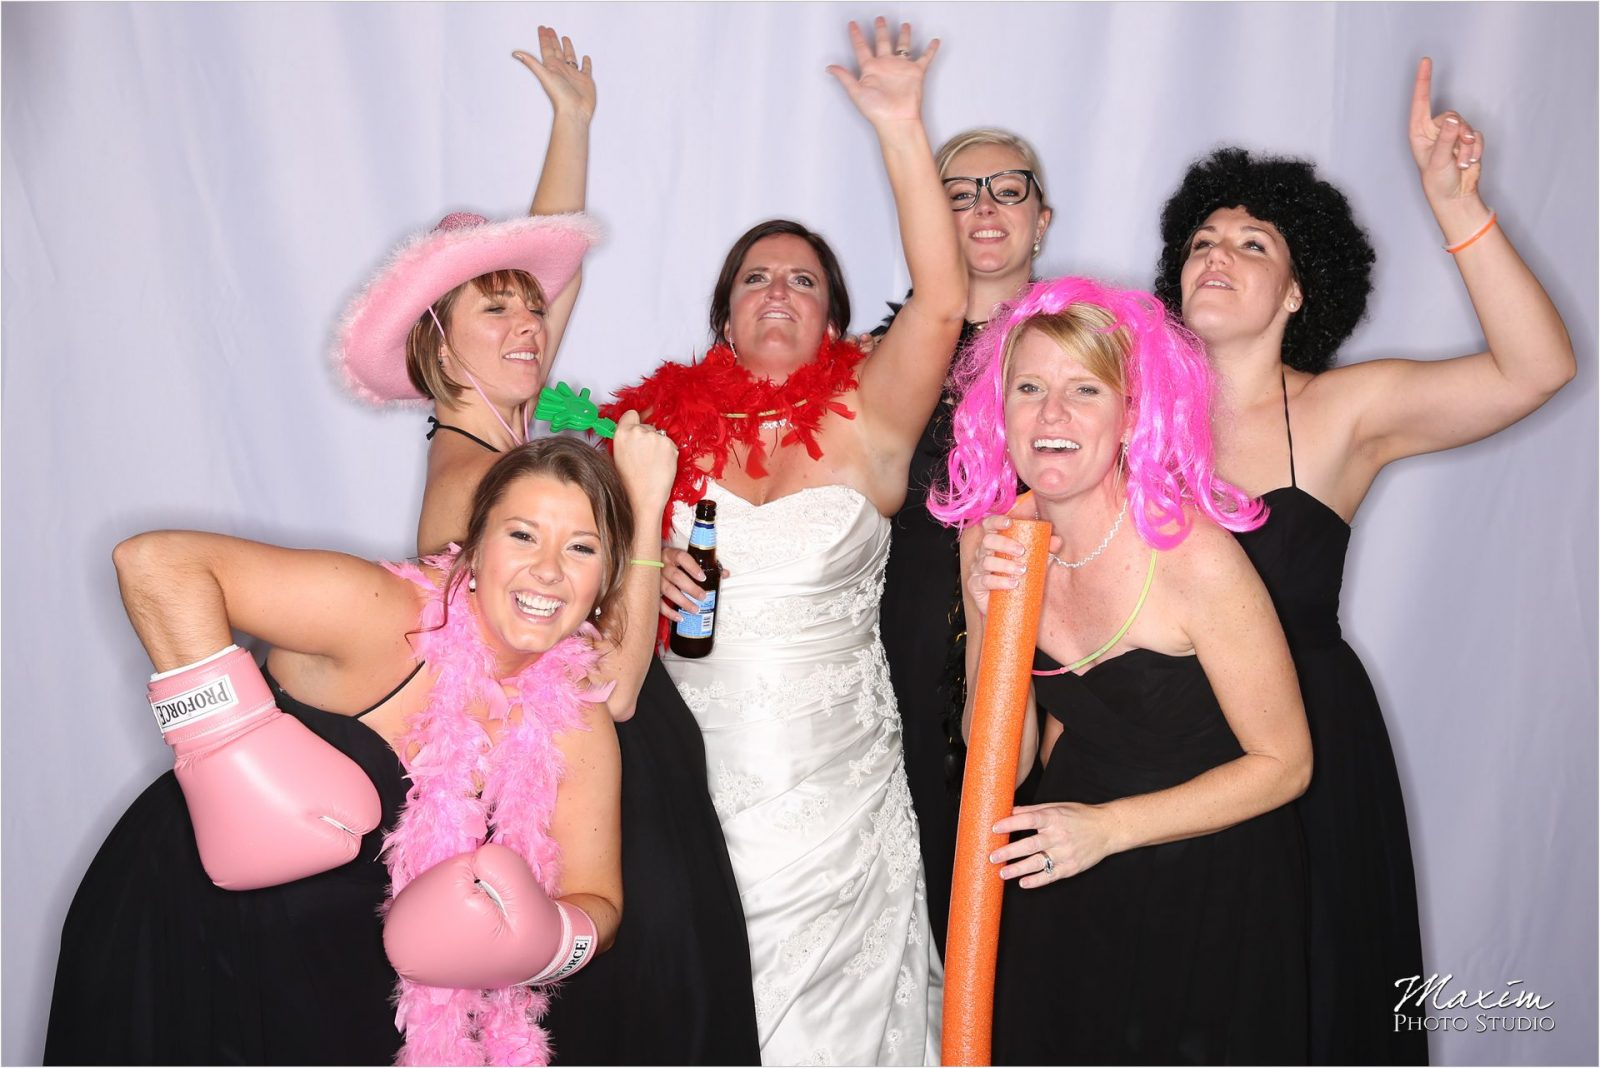 Hyatt Cincinnati Wedding Reception Photo Booth